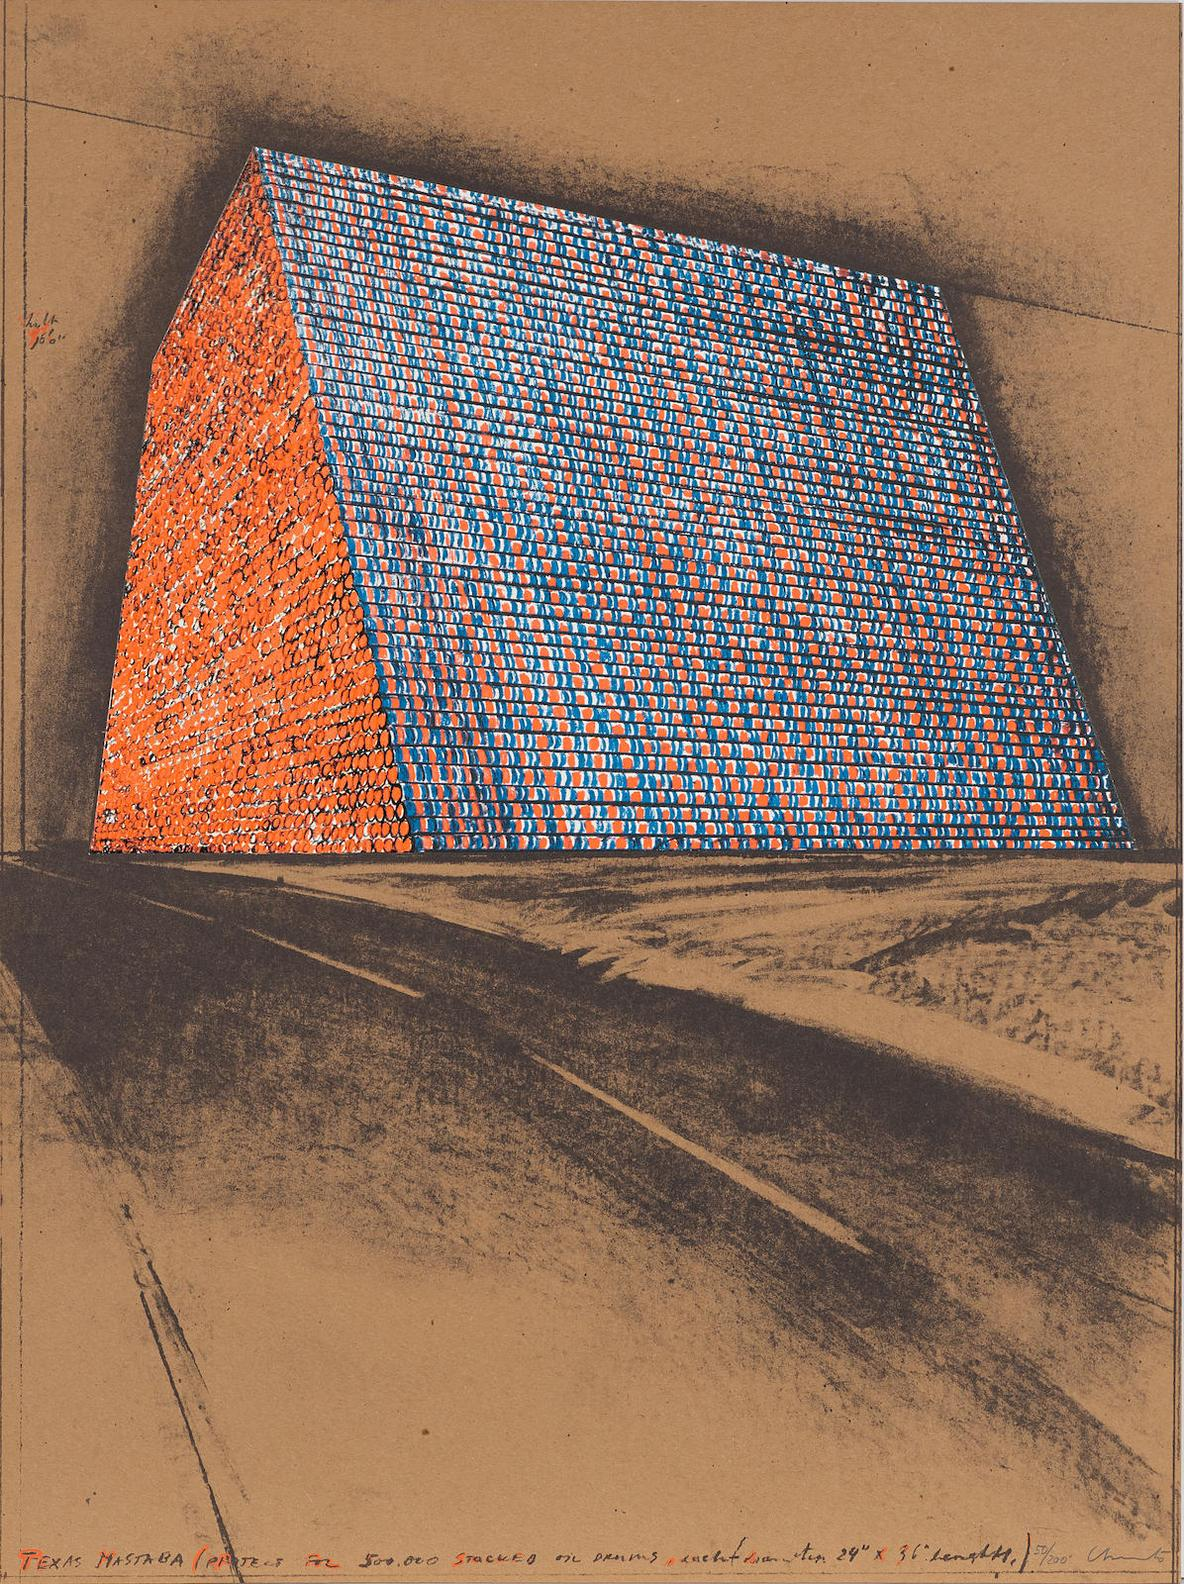 Christo and Jeanne-Claude-Texas Mastaba (Project For 500.000 Stacked Oil Drums), From America: The Third Century-1976